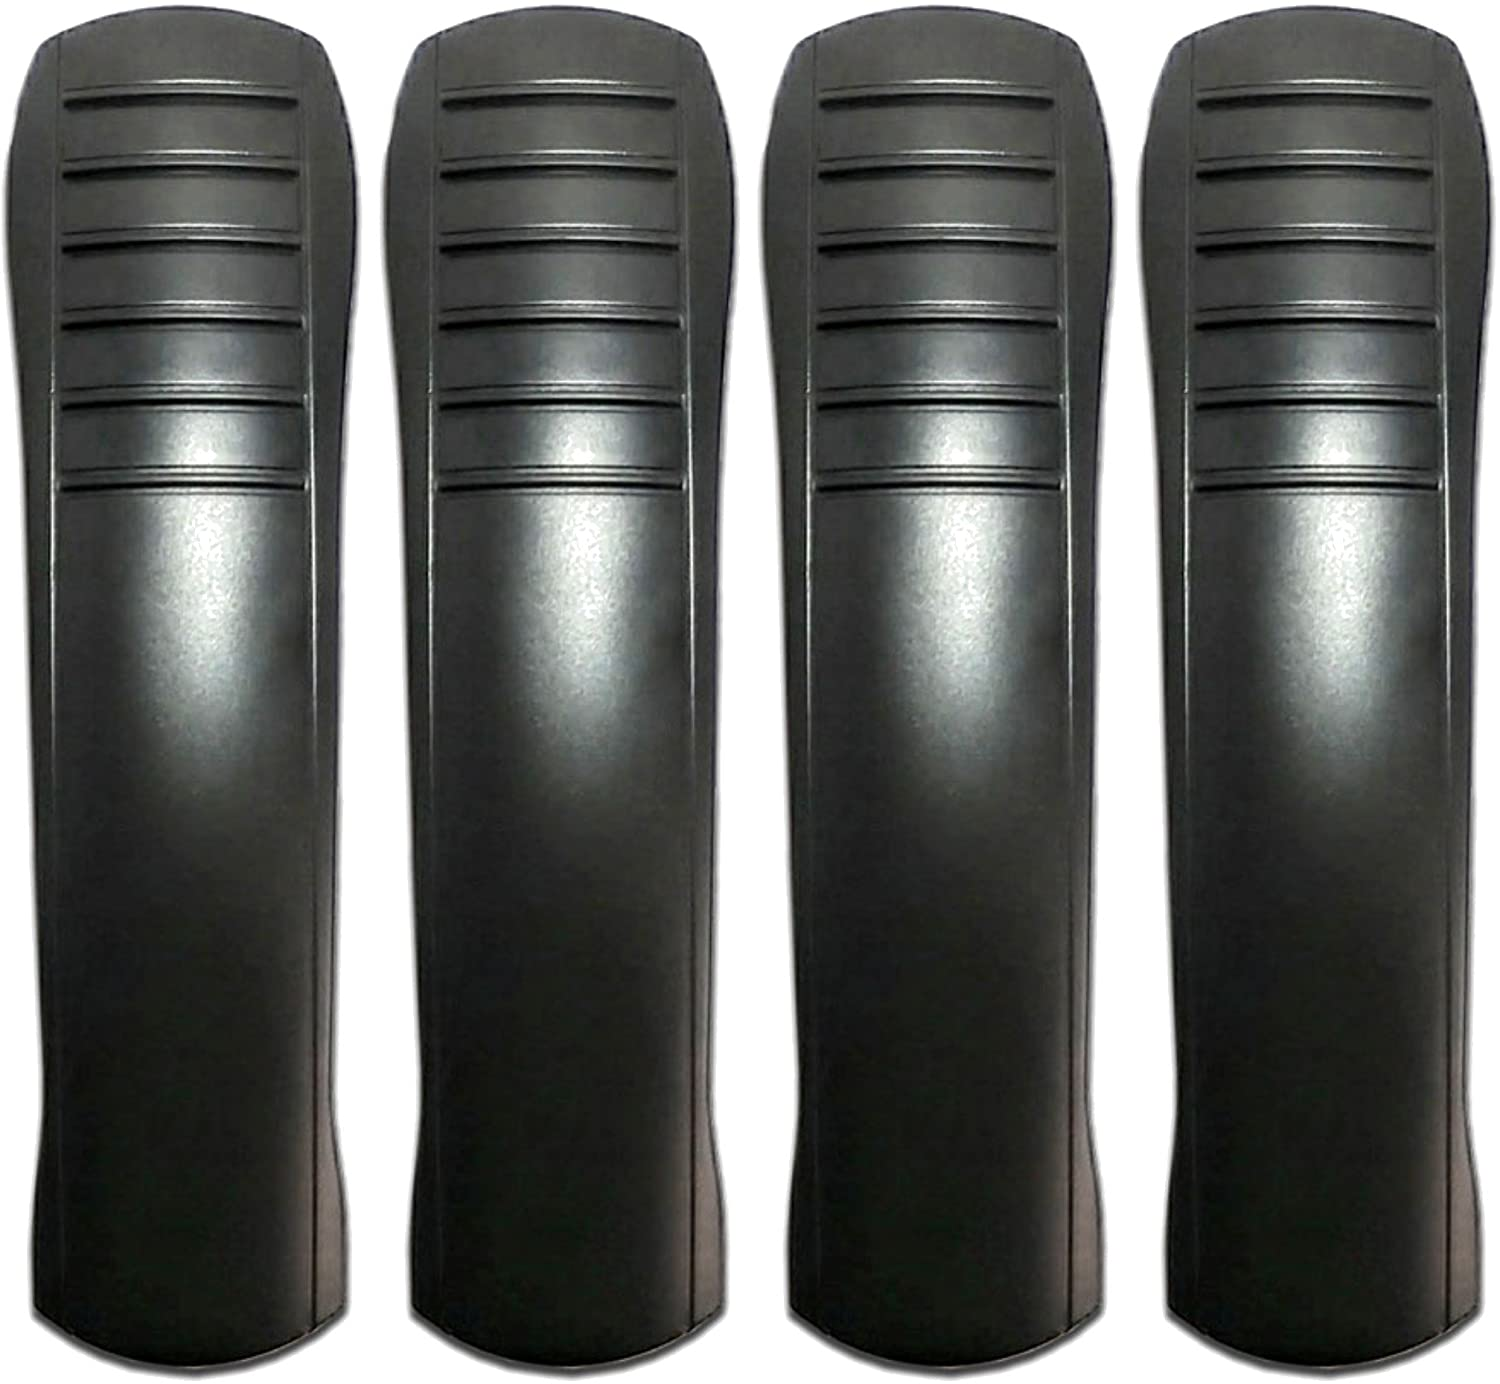 Handsets Compatible with Mitel 5300 Series Phones4 Pack Fits 5304, 5312, 5320, 5320e, 5324, 5330, 5330e, 5340, 5340e, and 5360. Also Fits 5207, 5215, 5220, and 5235